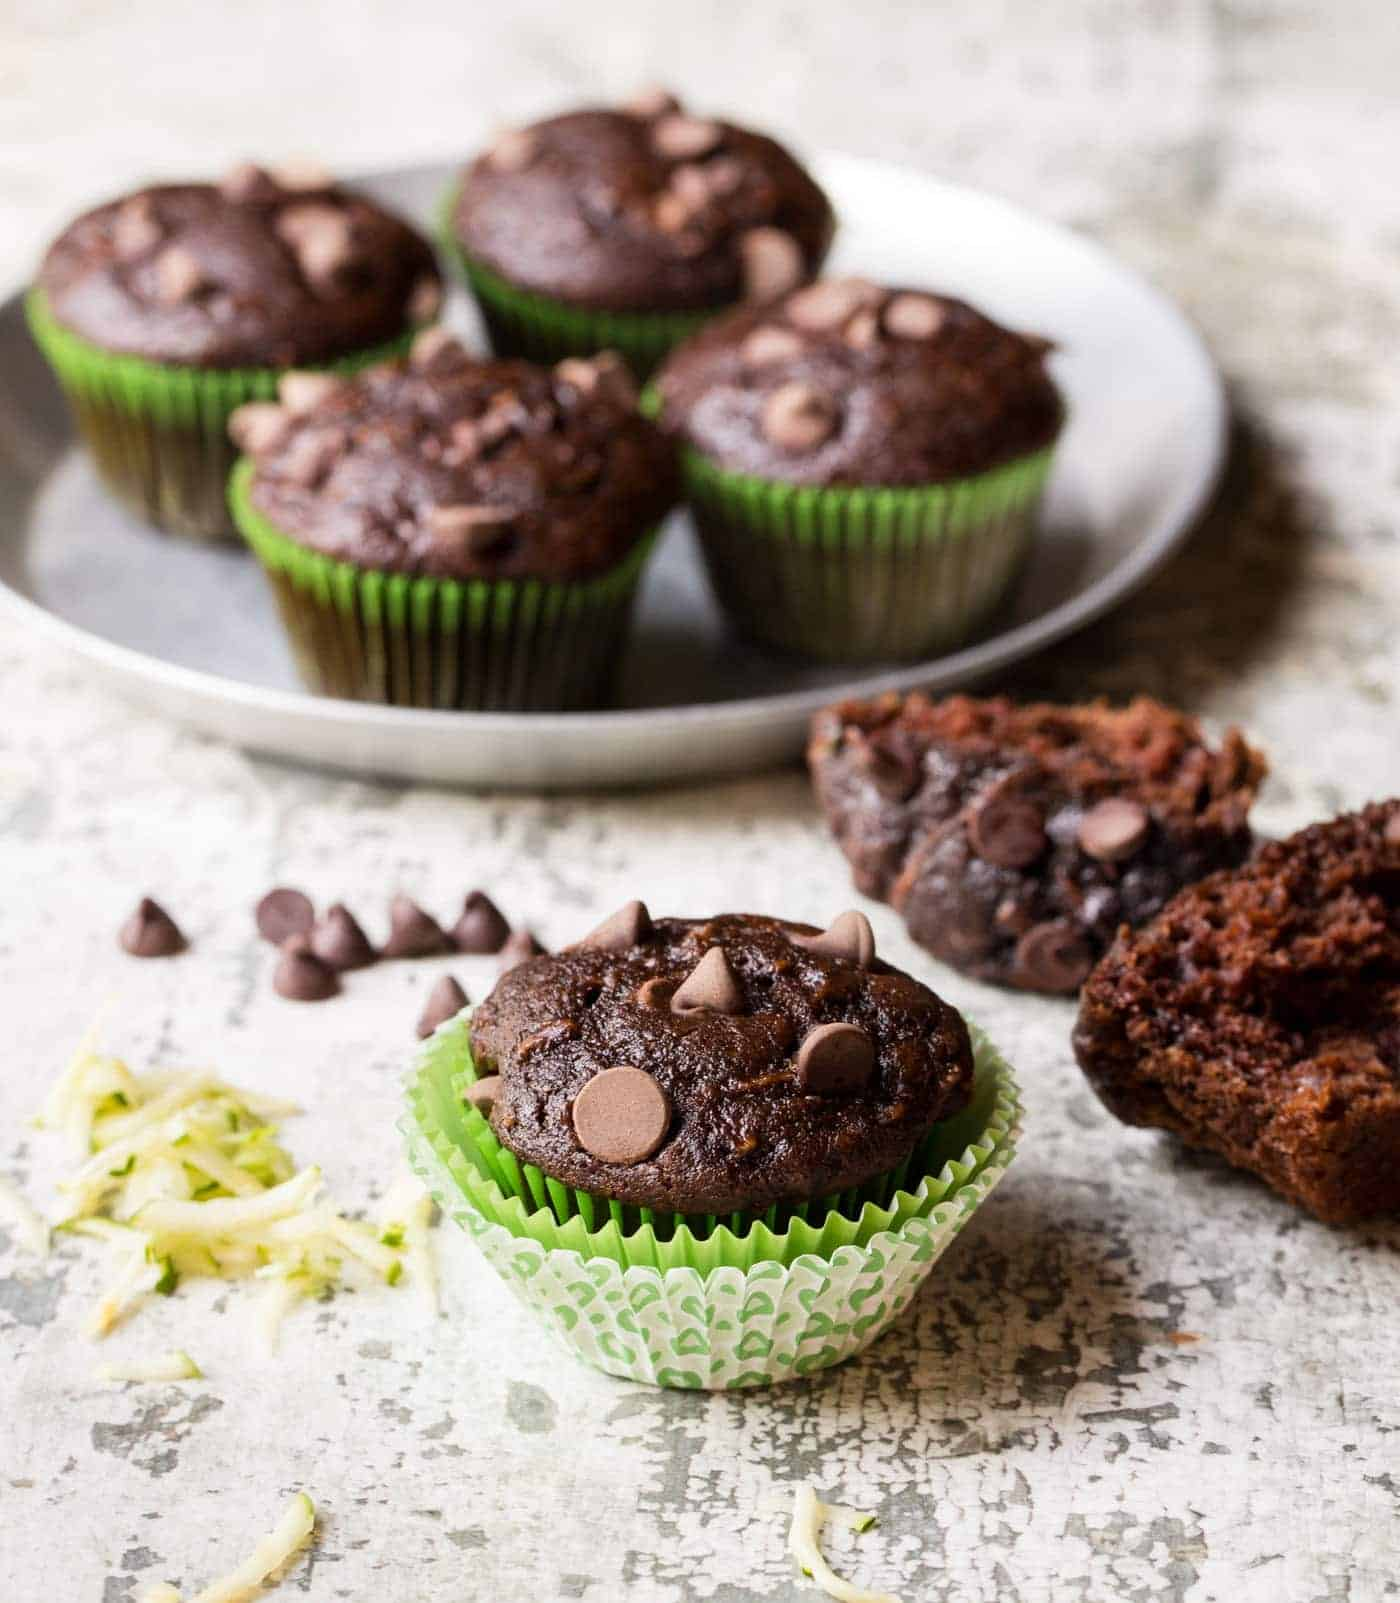 Chocolate Zucchini muffins of table with grated zucchini and chocolate chips.